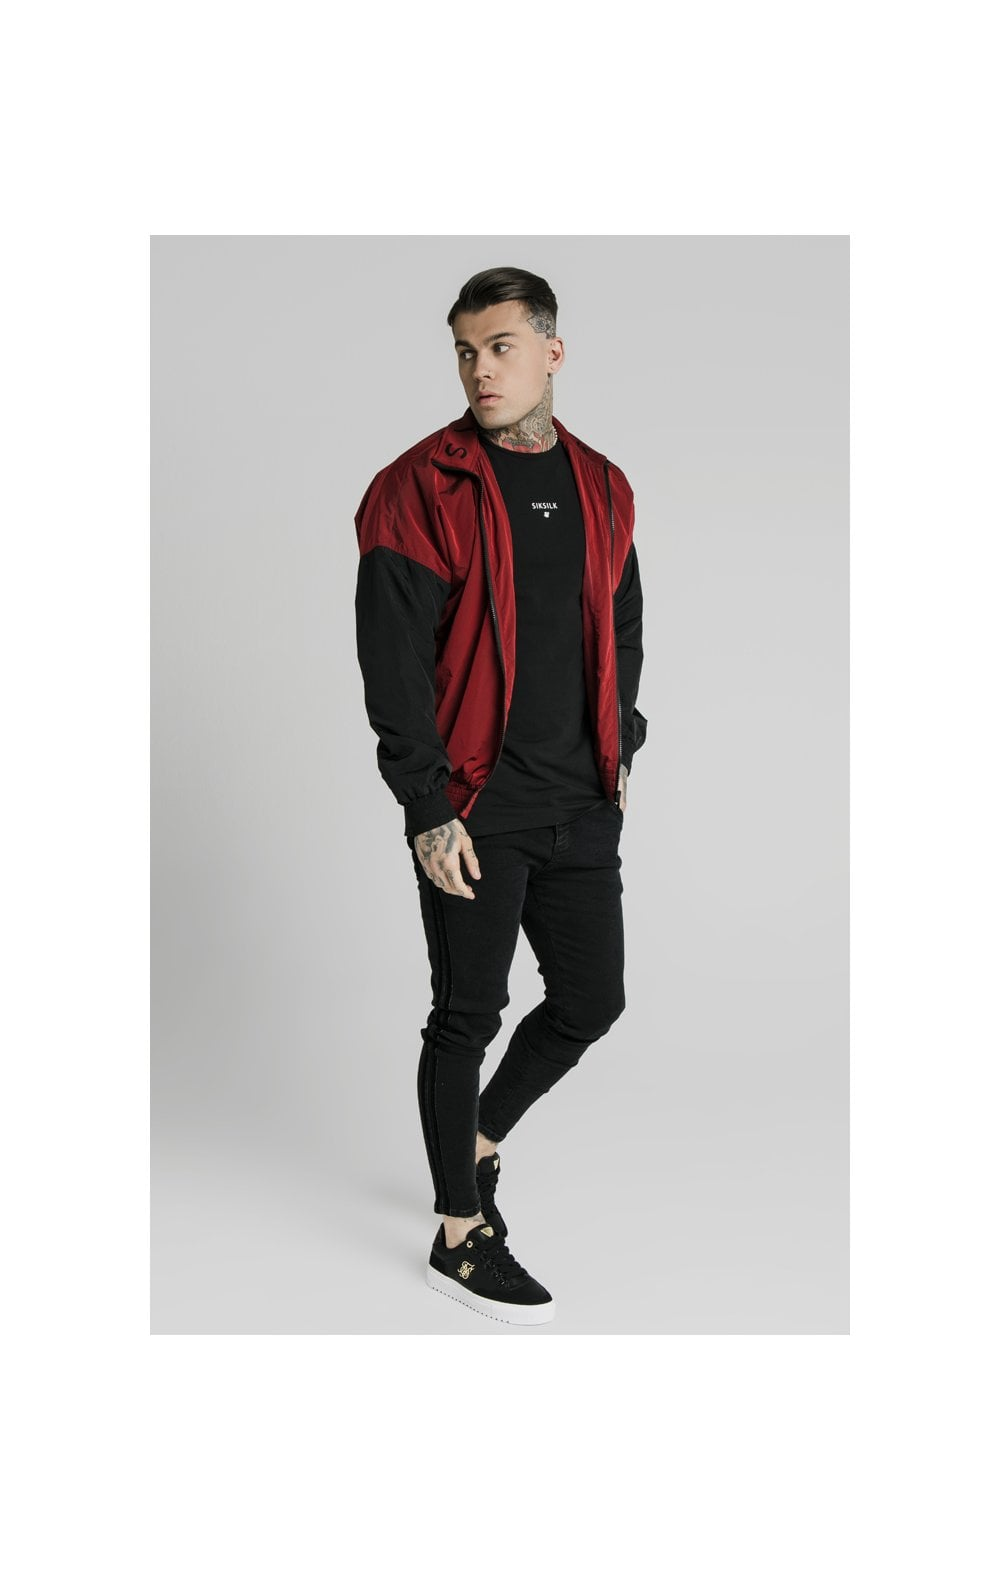 SikSilk Windrunner – Red & Black (3)